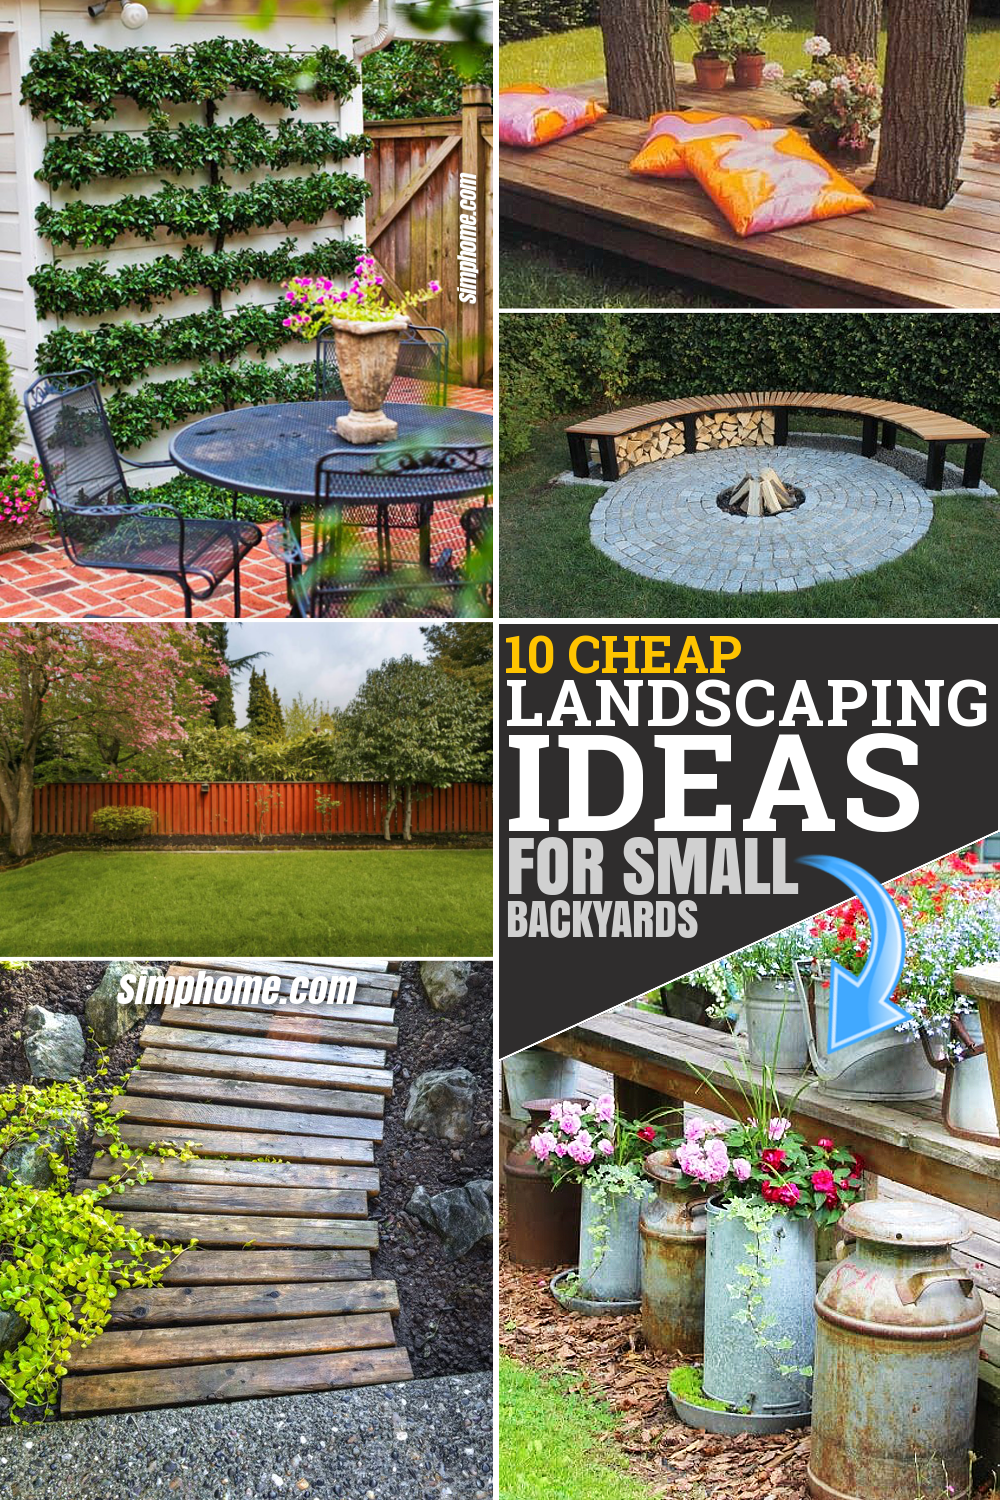 10 cheap landscaping ideas for small backyards via Simphome.com Featured Pinterest Image